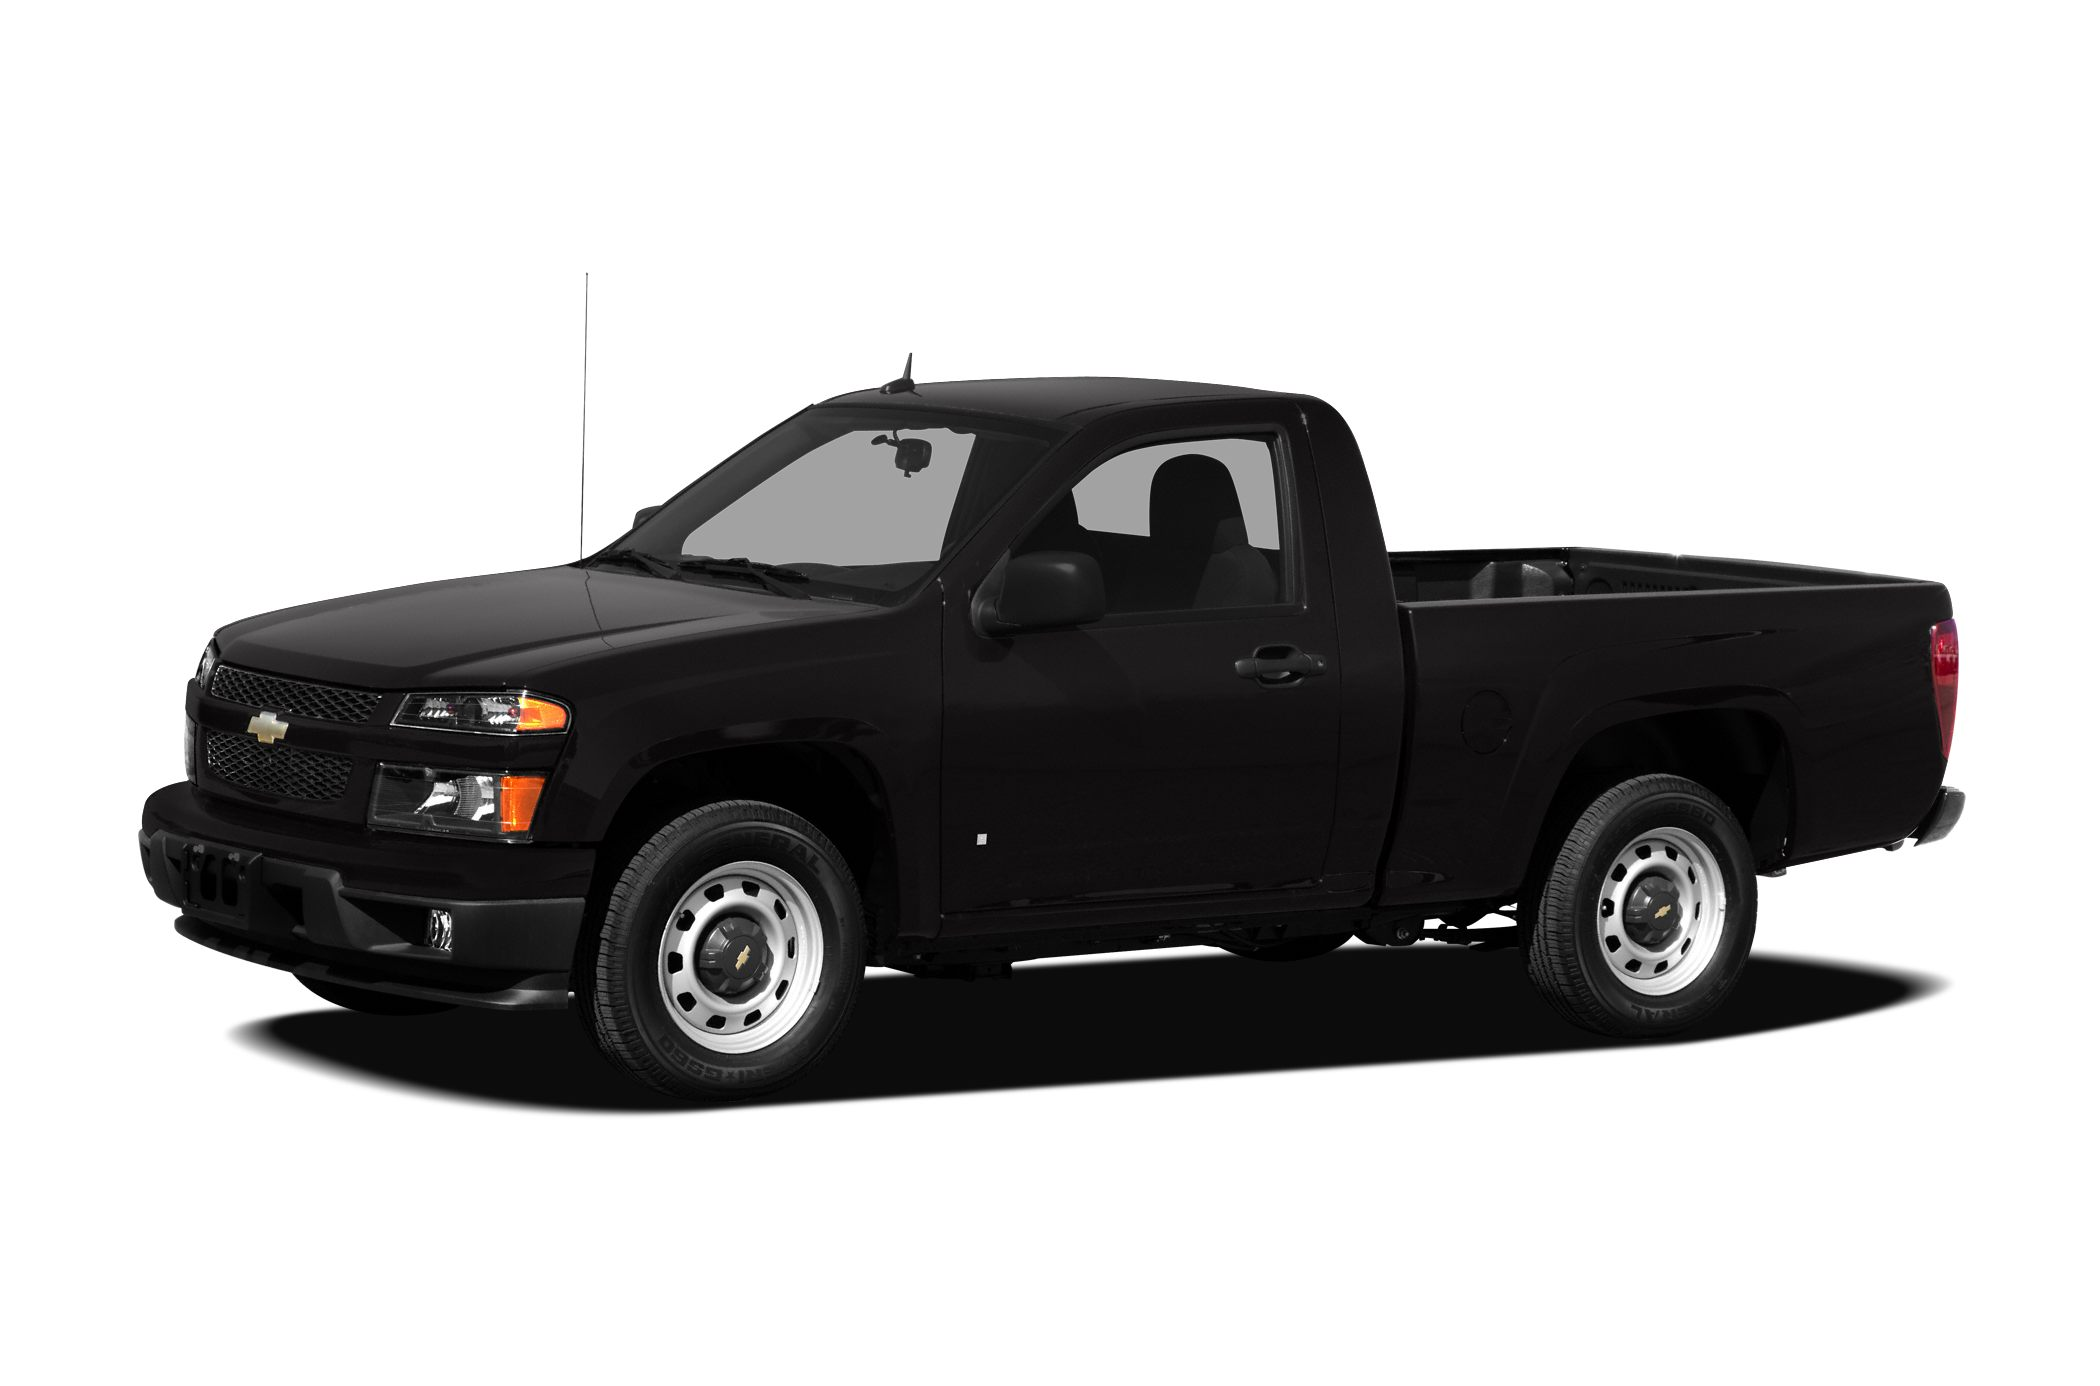 2009 Chevrolet Colorado LT Crew Cab Pickup for sale in Alachua for $12,237 with 111,747 miles.